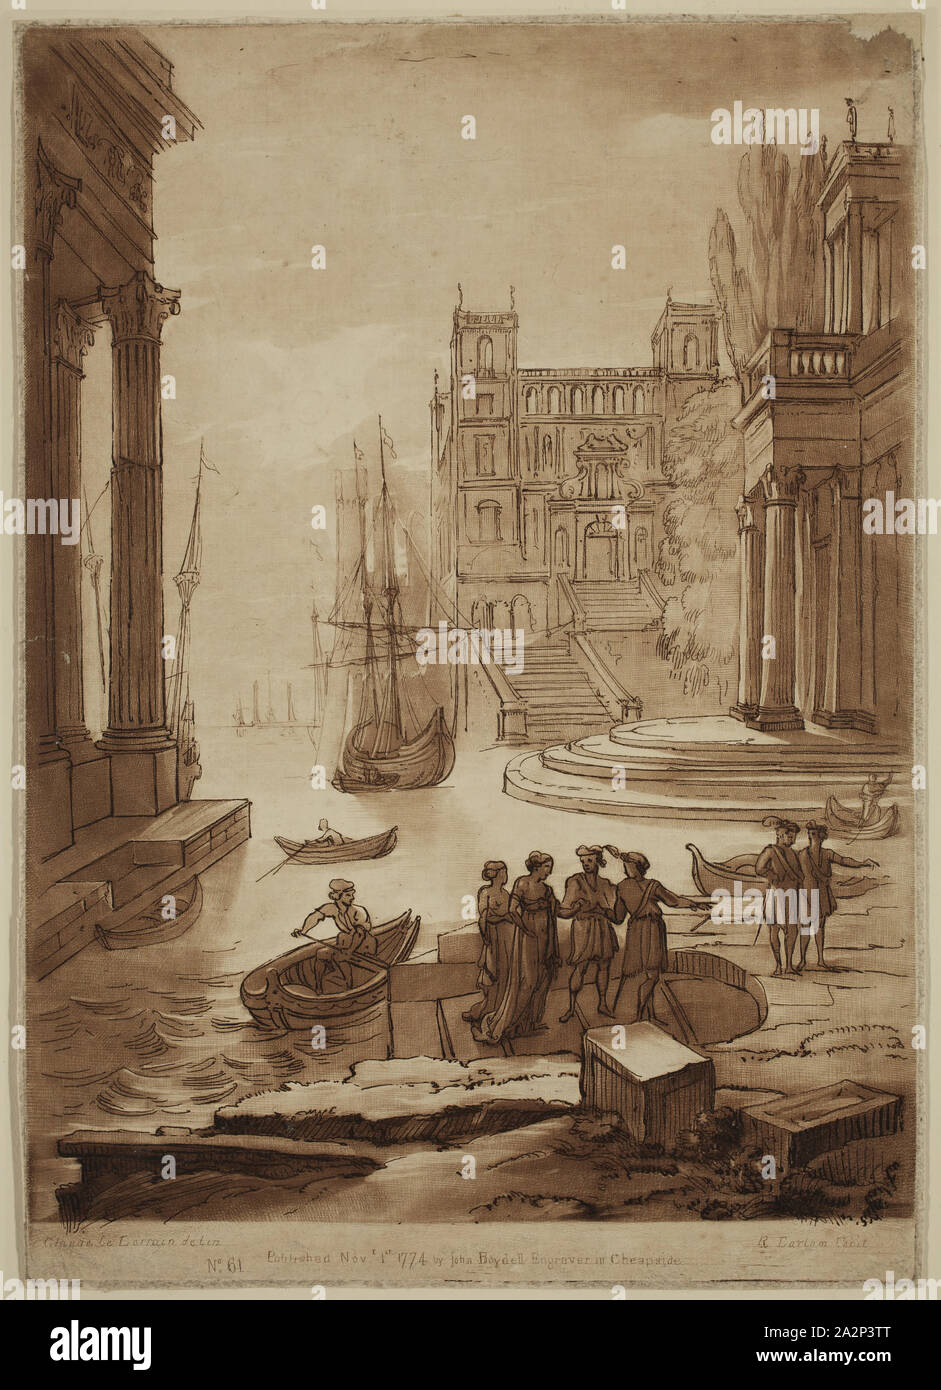 Richard Earlom, English, 1743 - 1822, after Claude Gellée, French, 1600-1682, Seaport with the Debarkation of a Lady of Quality, ca. 1774, etching and mezzotint printed in brown ink on laid paper, Plate: 10 5/8 × 7 1/2 inches (27 × 19.1 cm Stock Photo